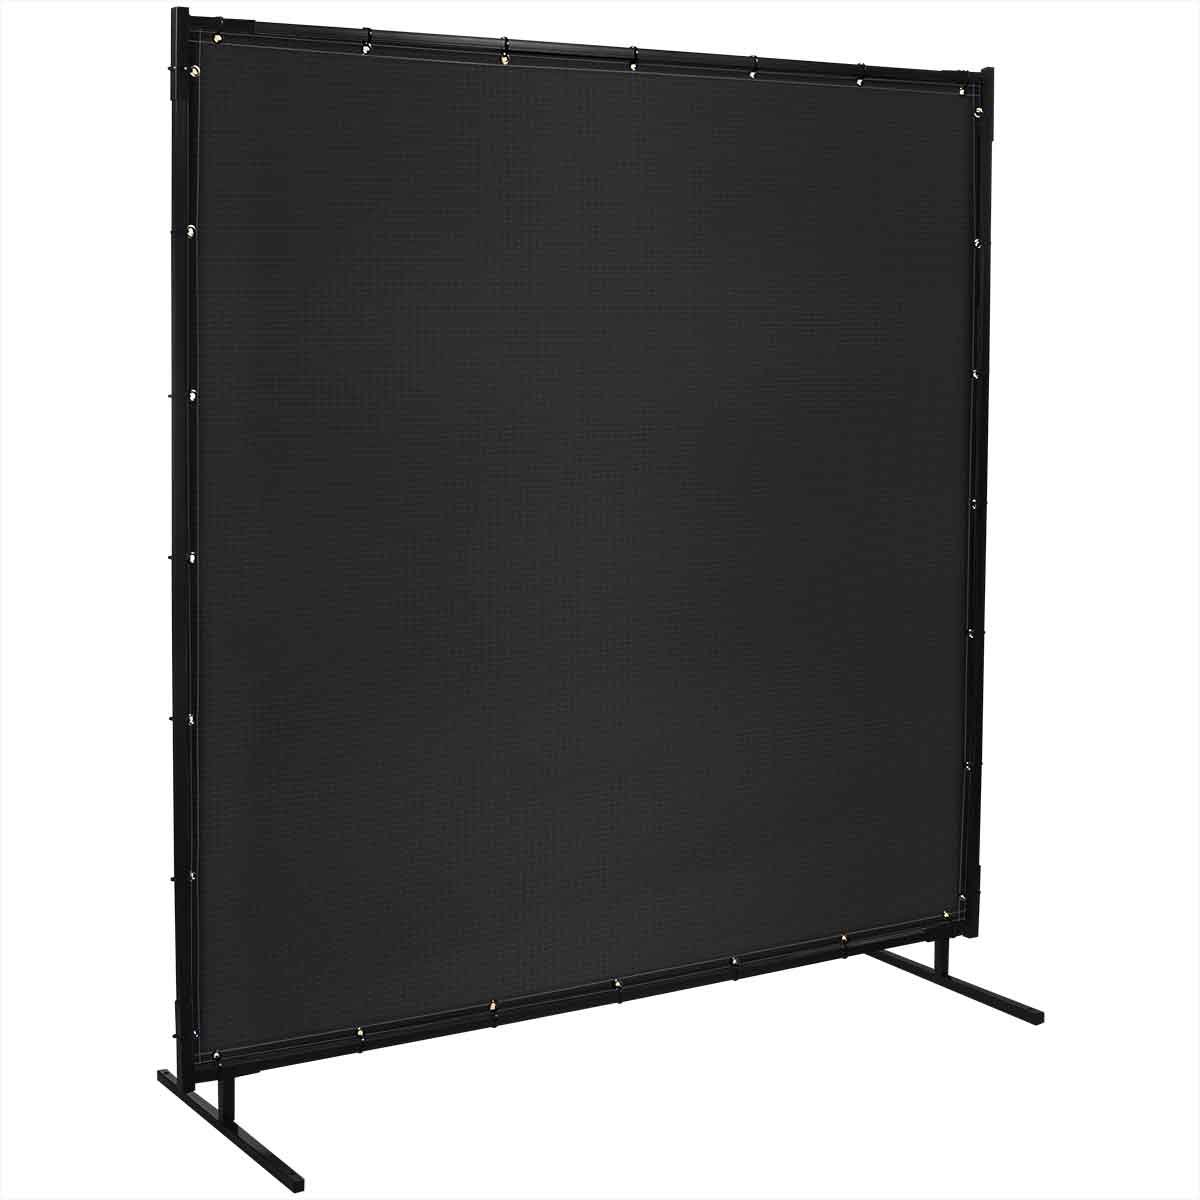 Steiner 536-5X6 Protect-O-Screen Classic Welding Screen with 13-Ounce Vinyl Laminated Polyester Curtain, Black, 5 x 6'